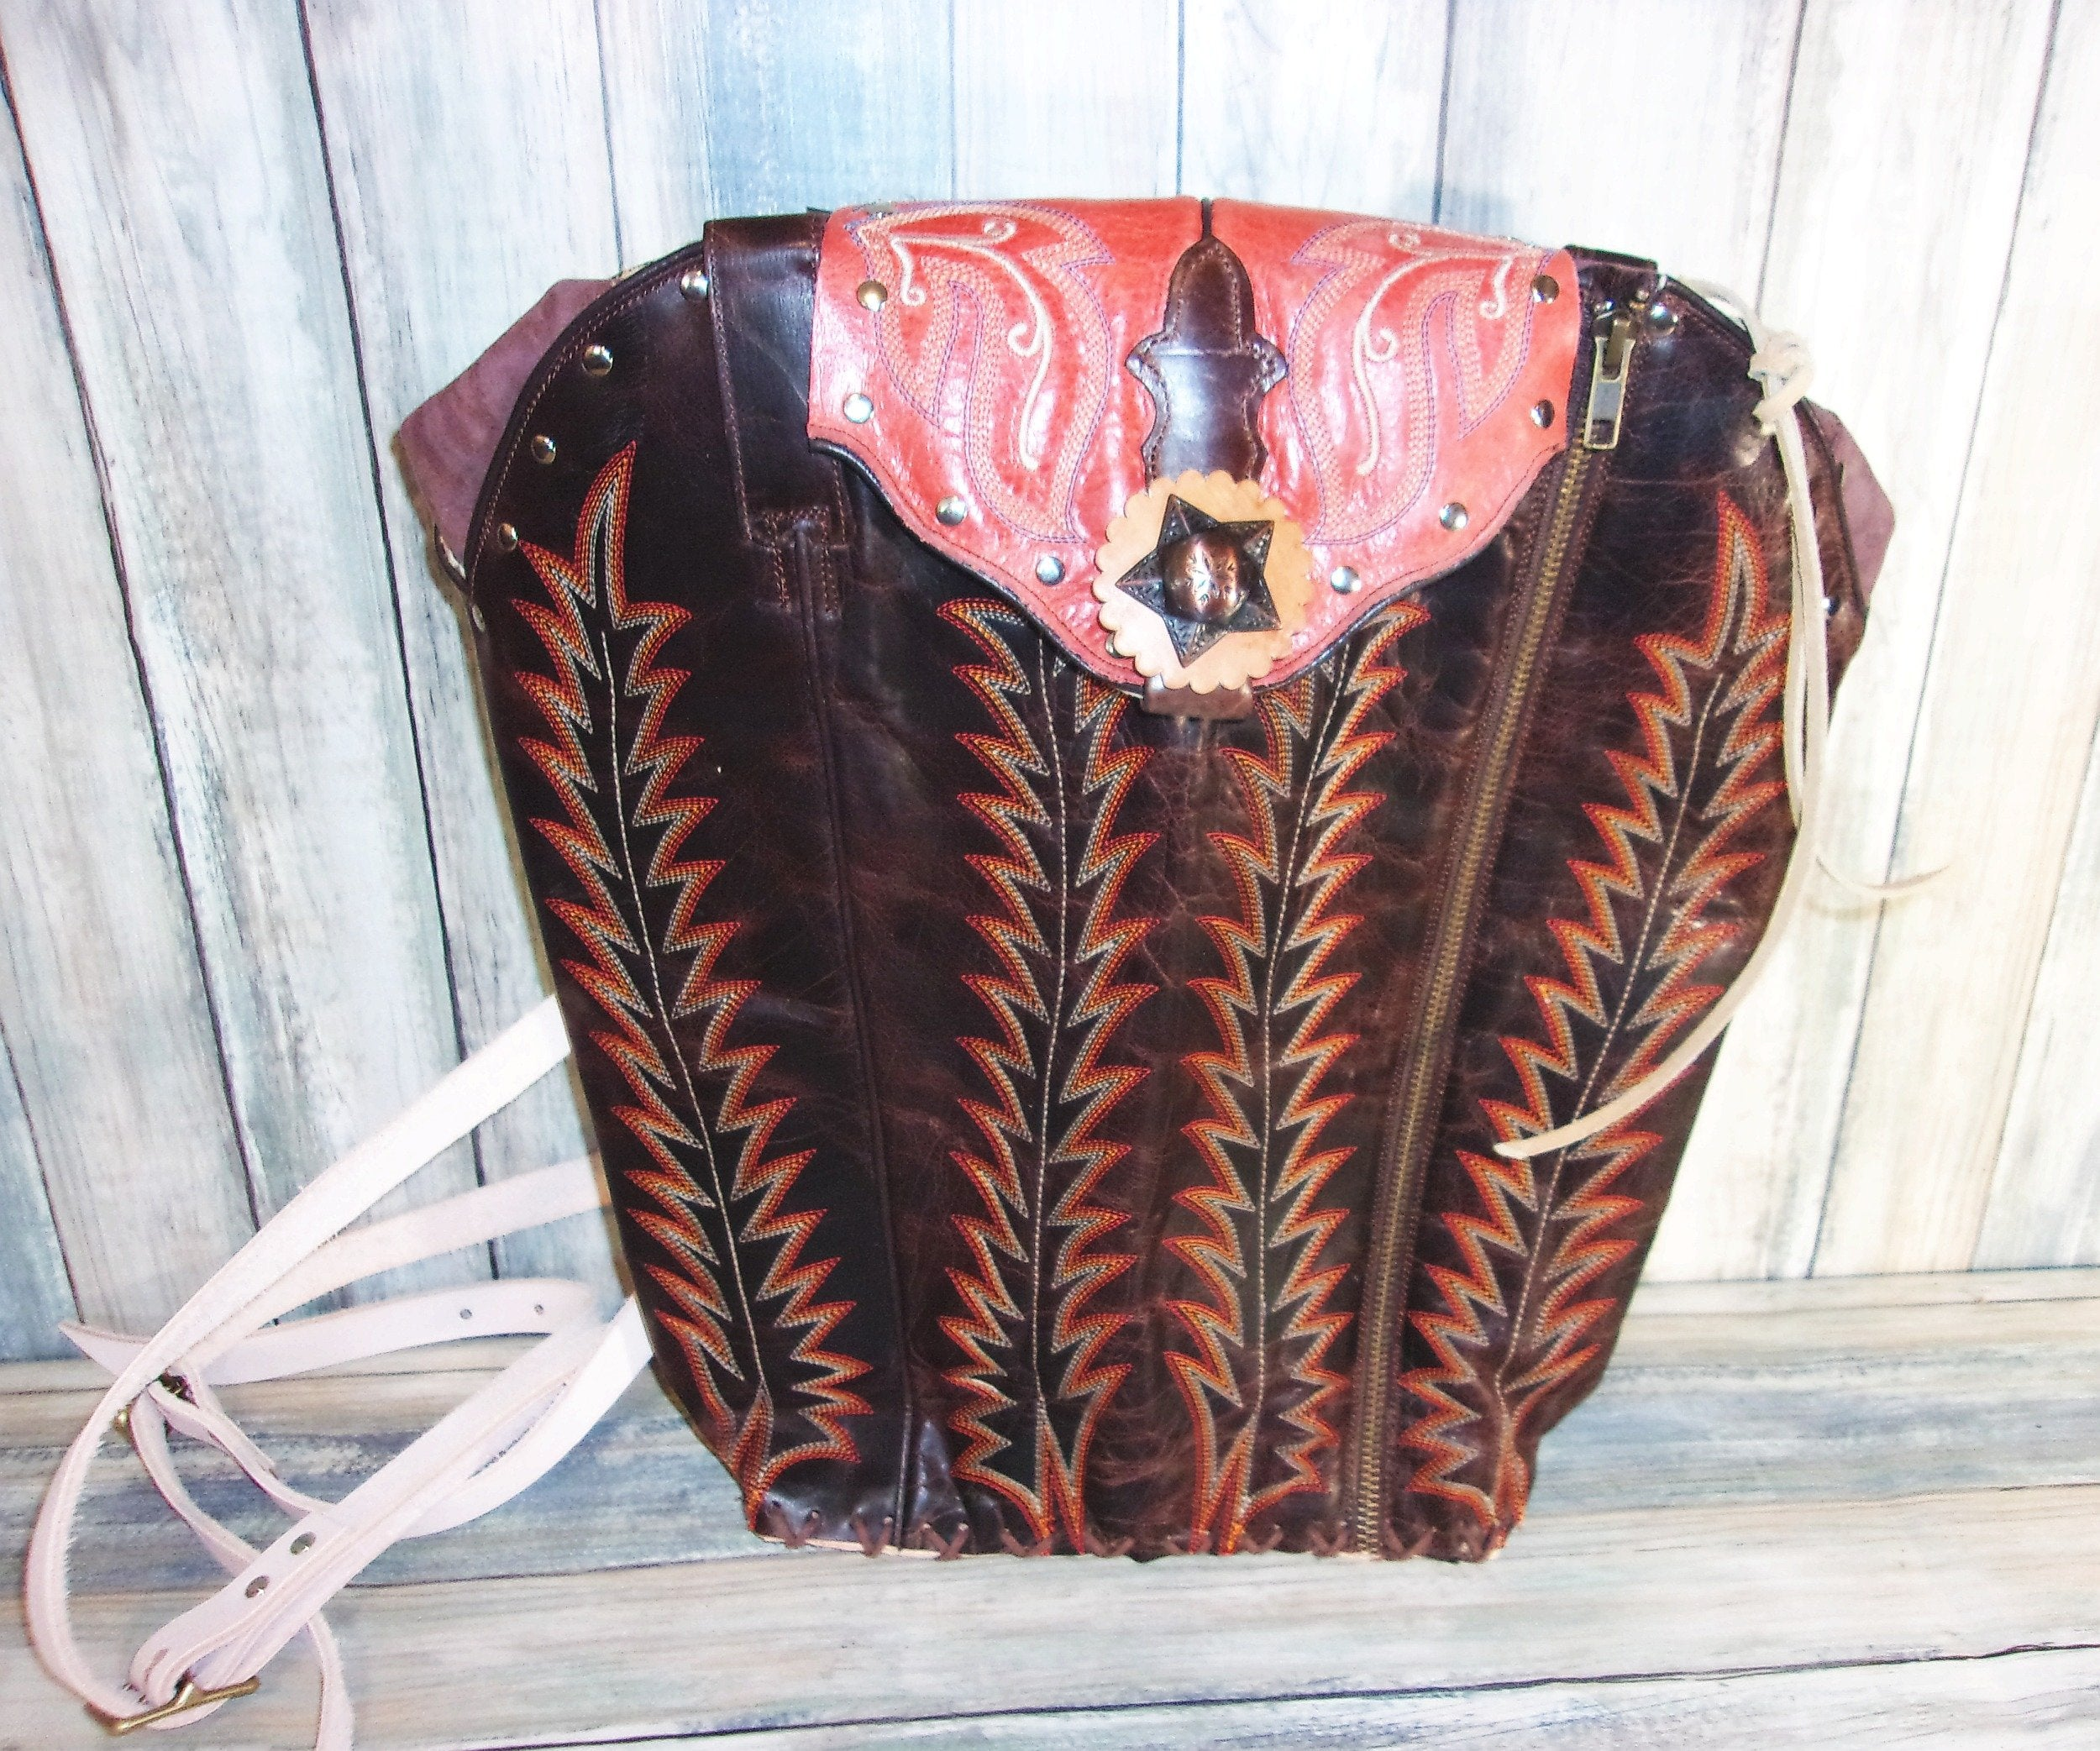 Brown and Orange Backpack - Western Backpack - Western Ruffsack - handcrafted handbags - cowboy boot purses - western purses - western handbags - western conceal carry purses - unique swing arm bags - Chris Thompson Bags